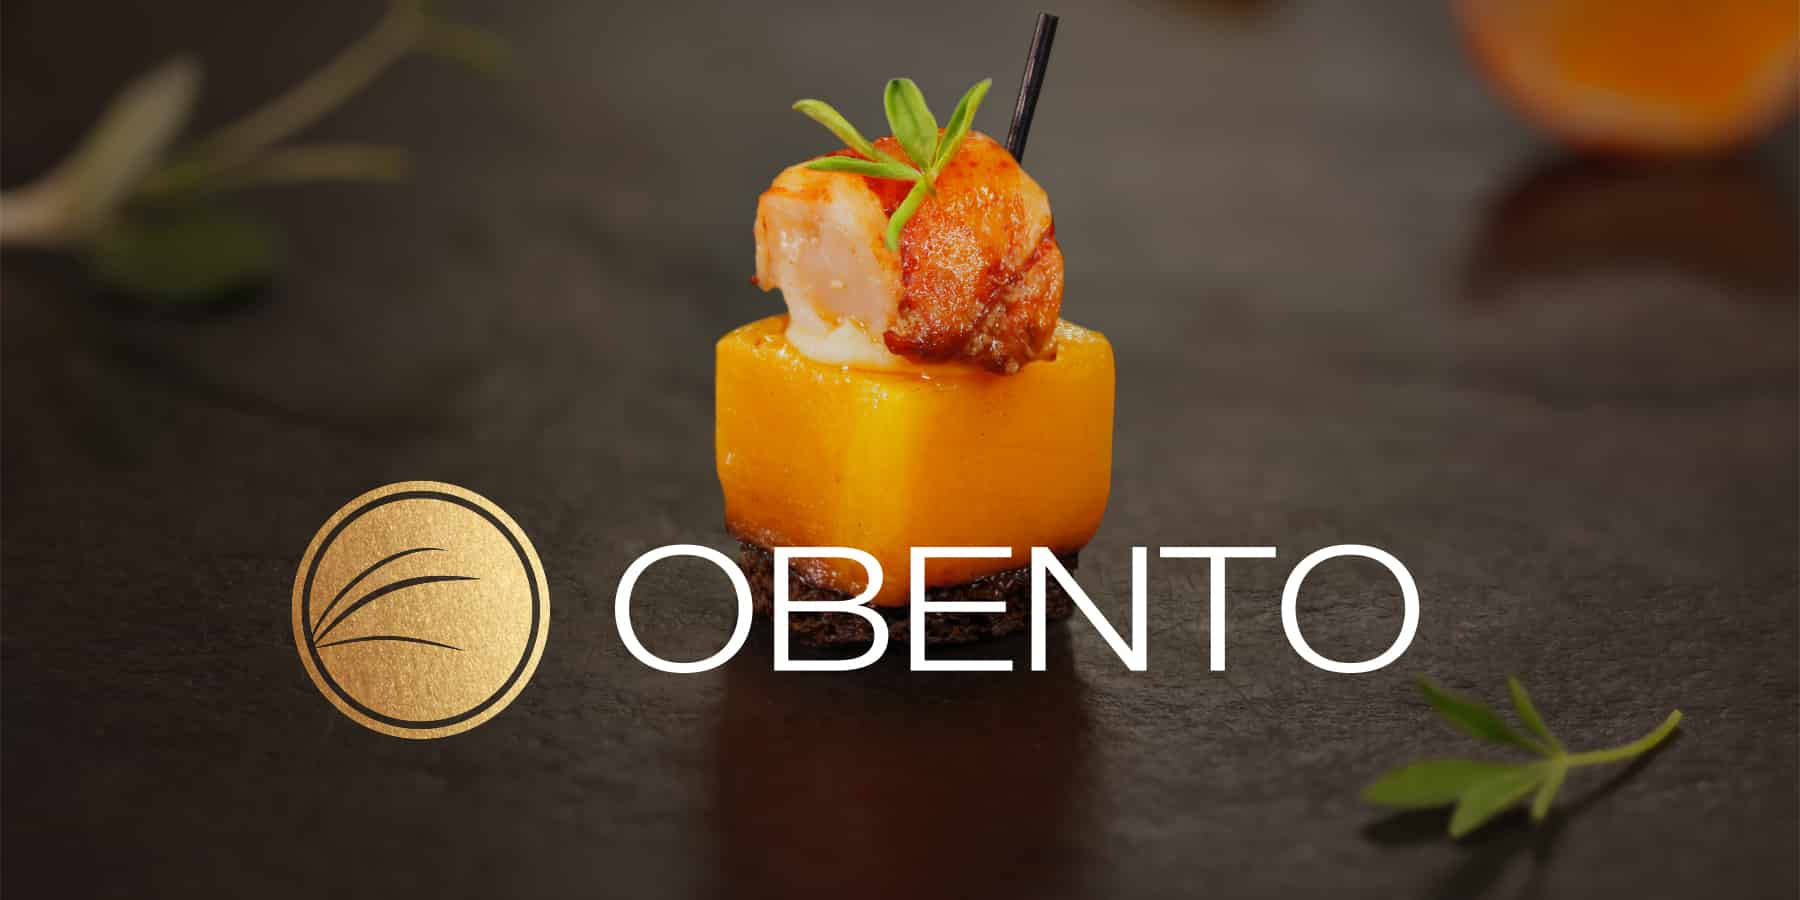 Obento by Germain